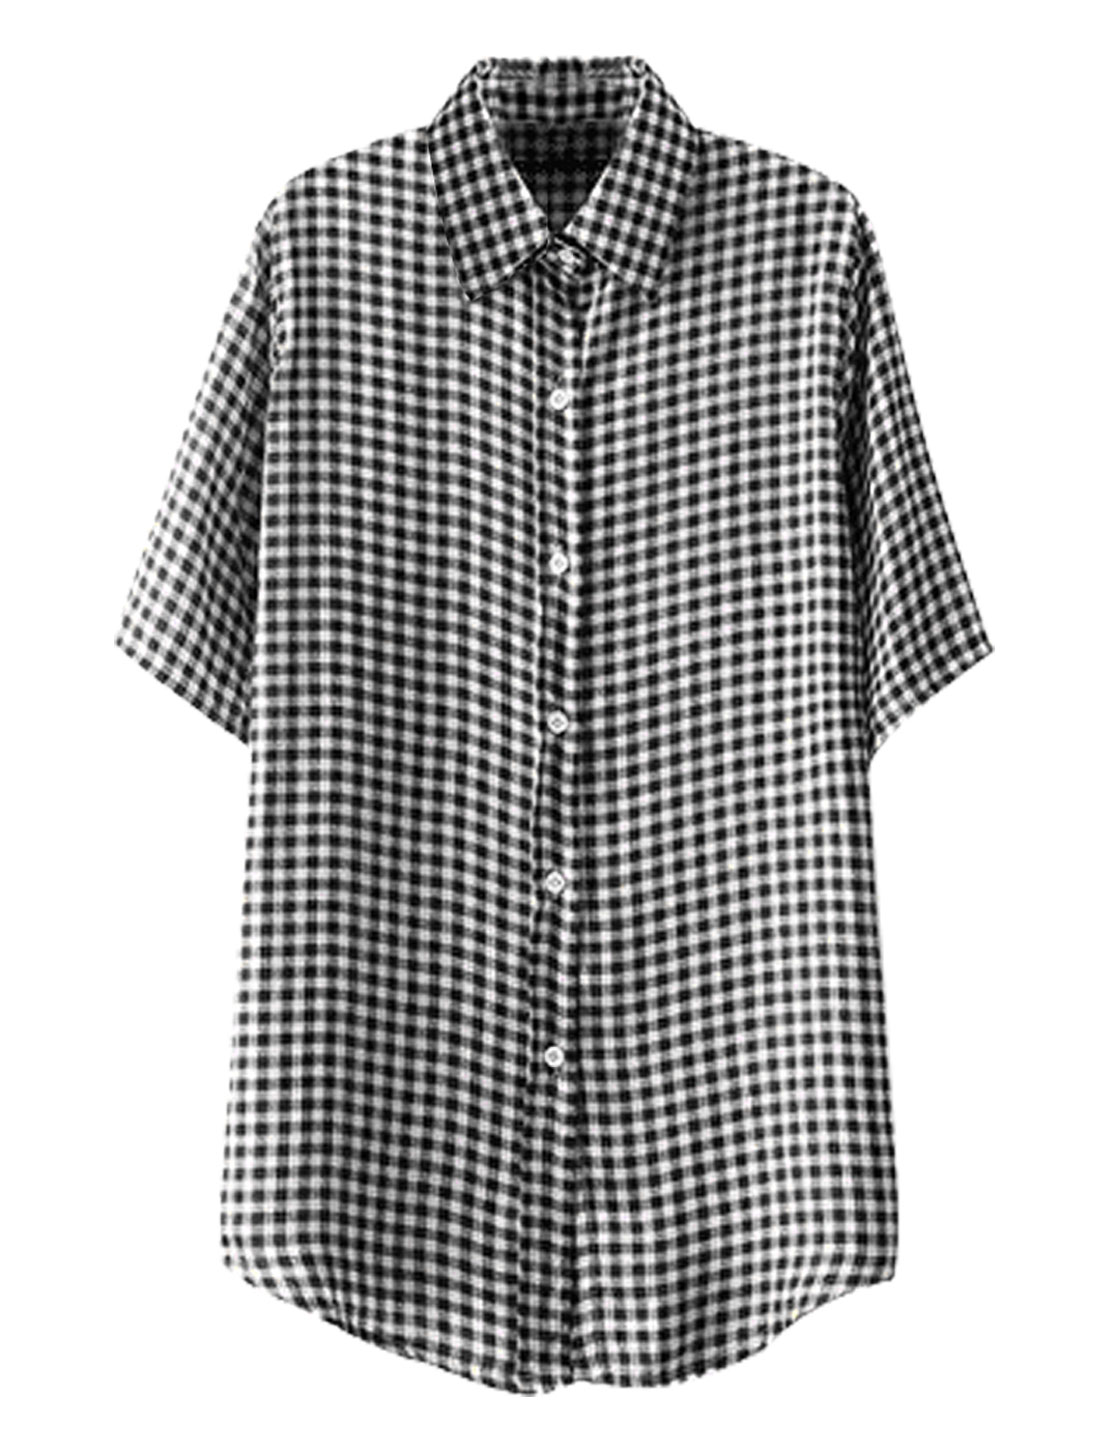 Lady Point Collar Short Sleeve Single Breasted Plaids Shirt Black S